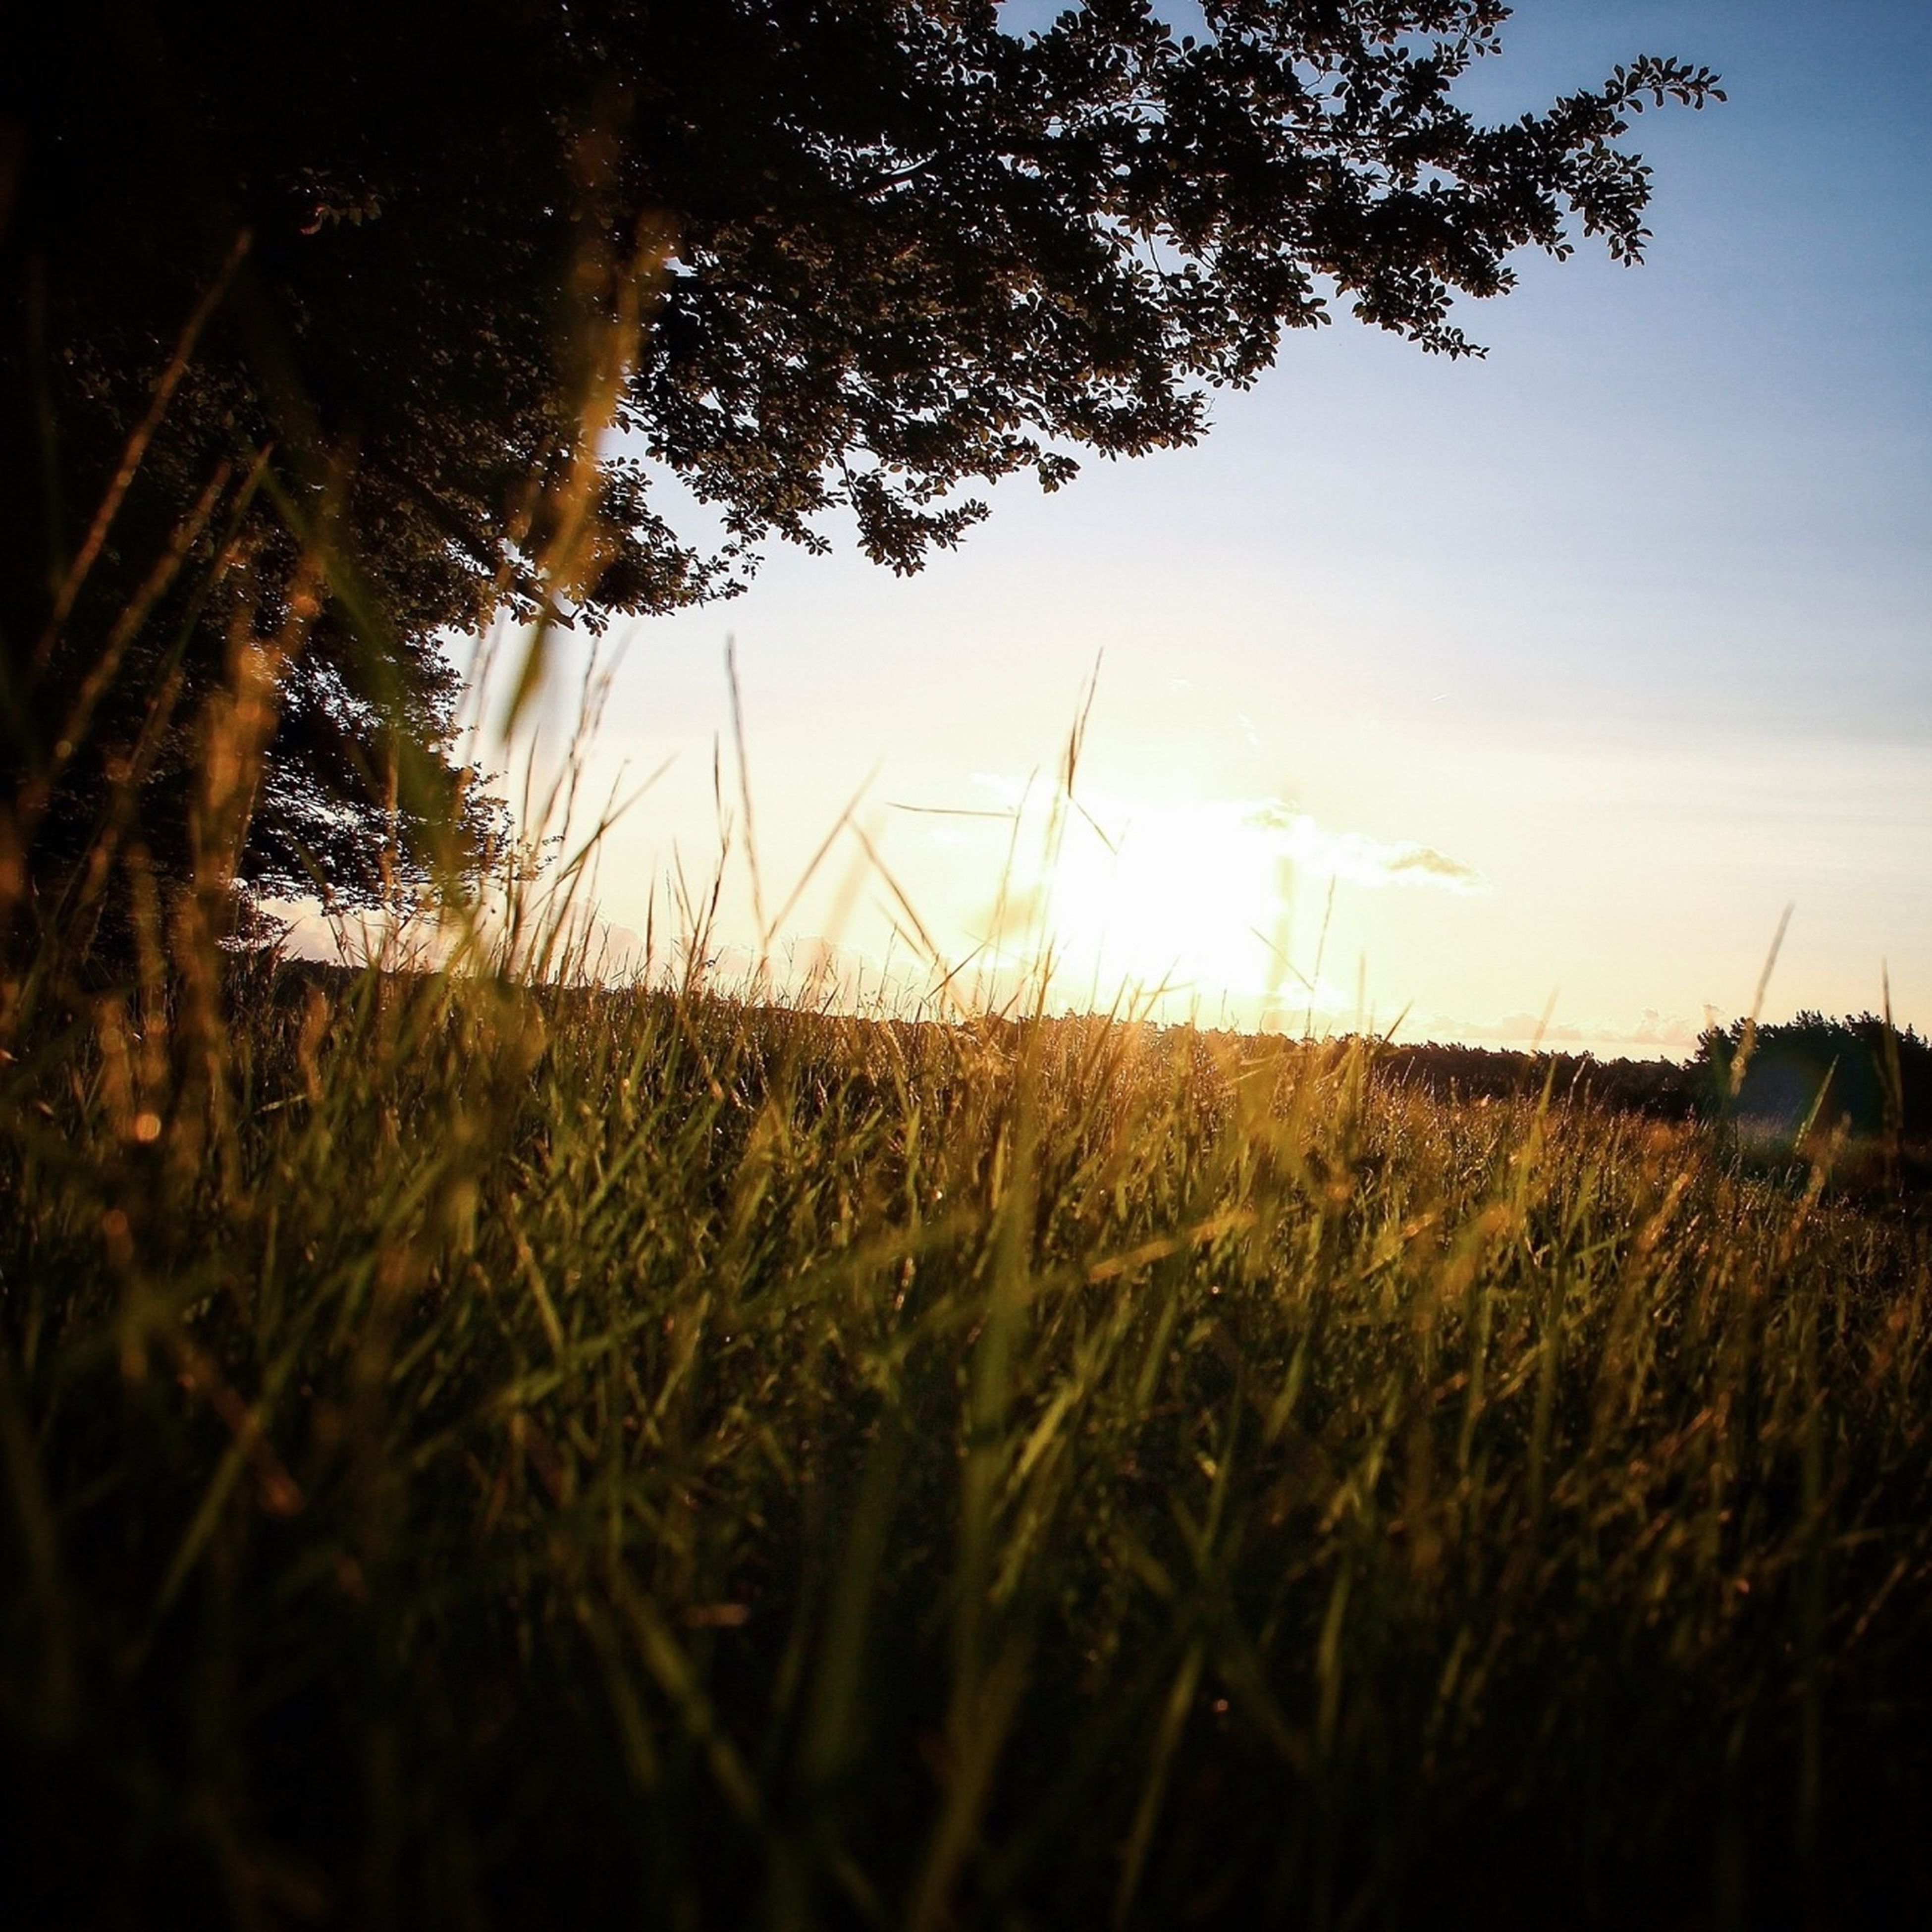 grass, field, sunset, growth, tranquility, tranquil scene, sun, nature, plant, landscape, sky, beauty in nature, scenics, sunlight, grassy, silhouette, idyllic, no people, outdoors, rural scene